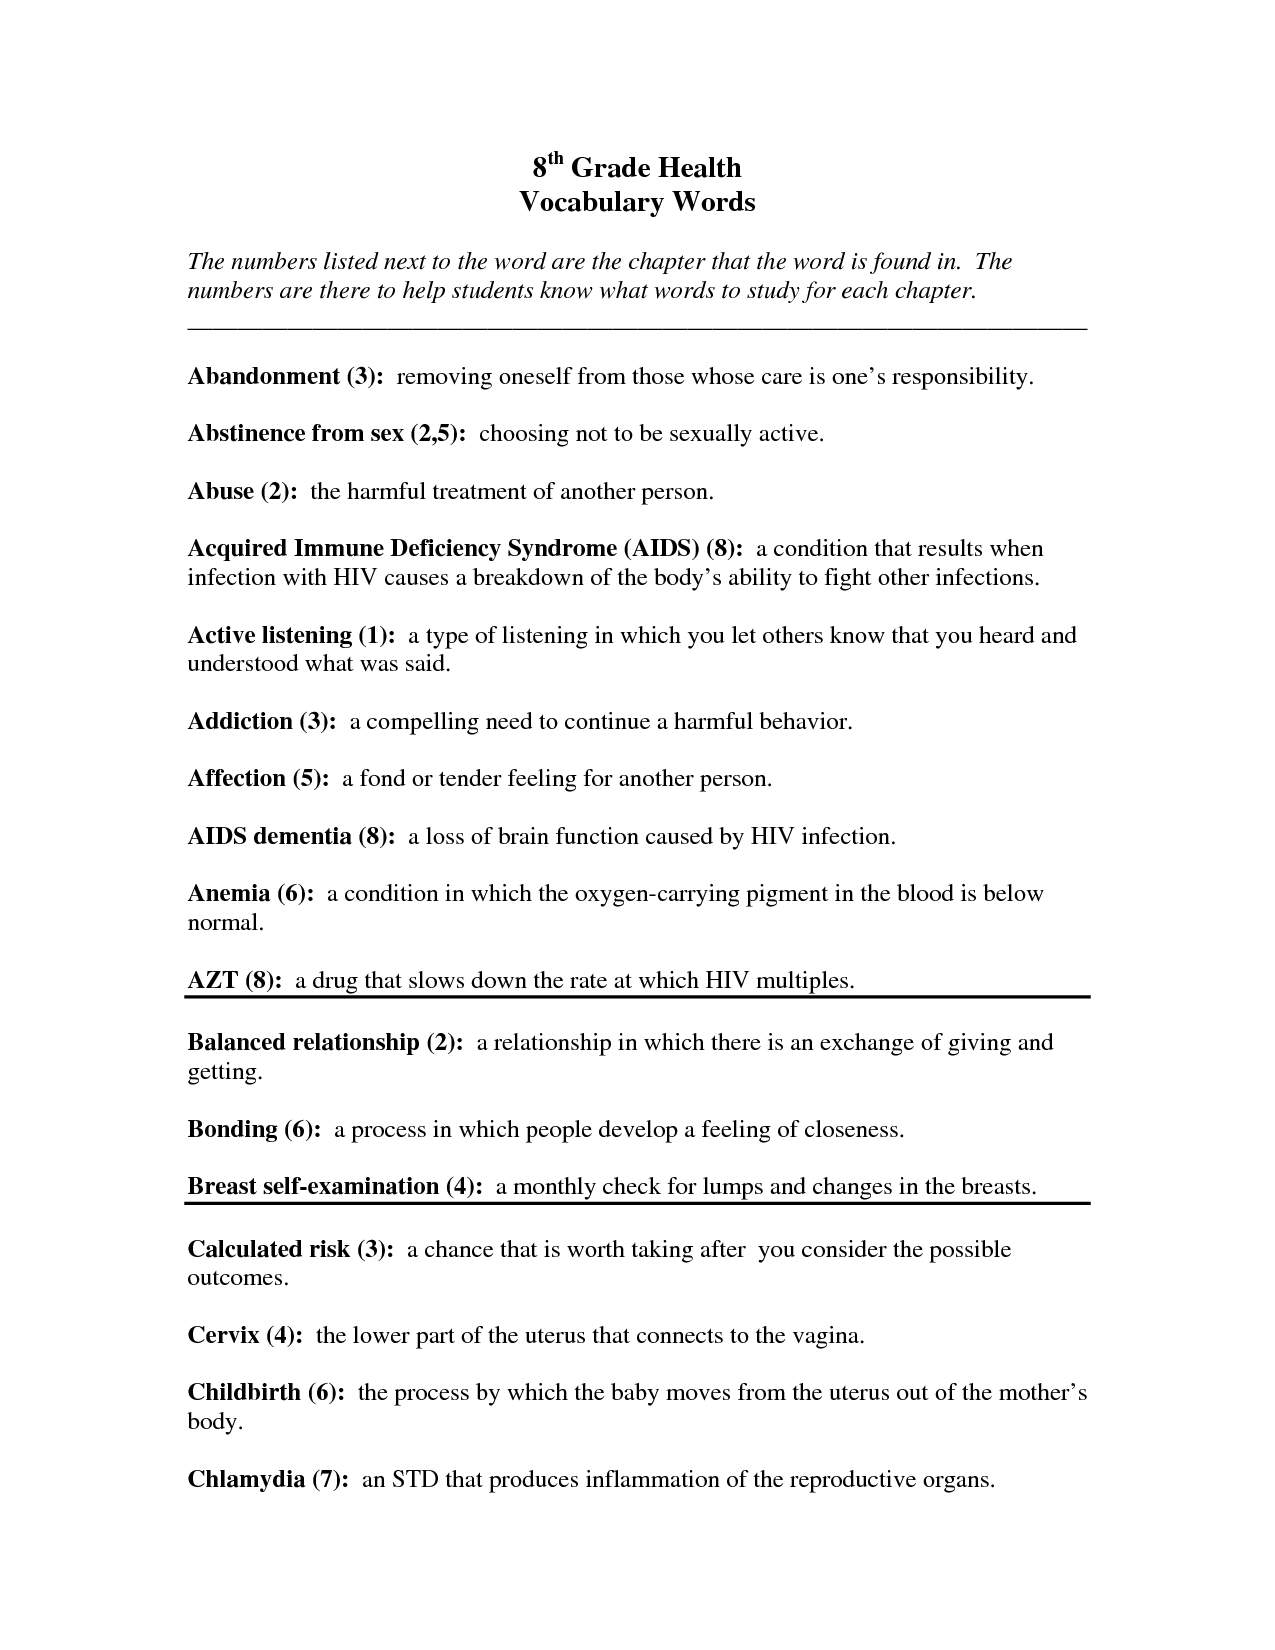 7th Grade Free Science Worksheets